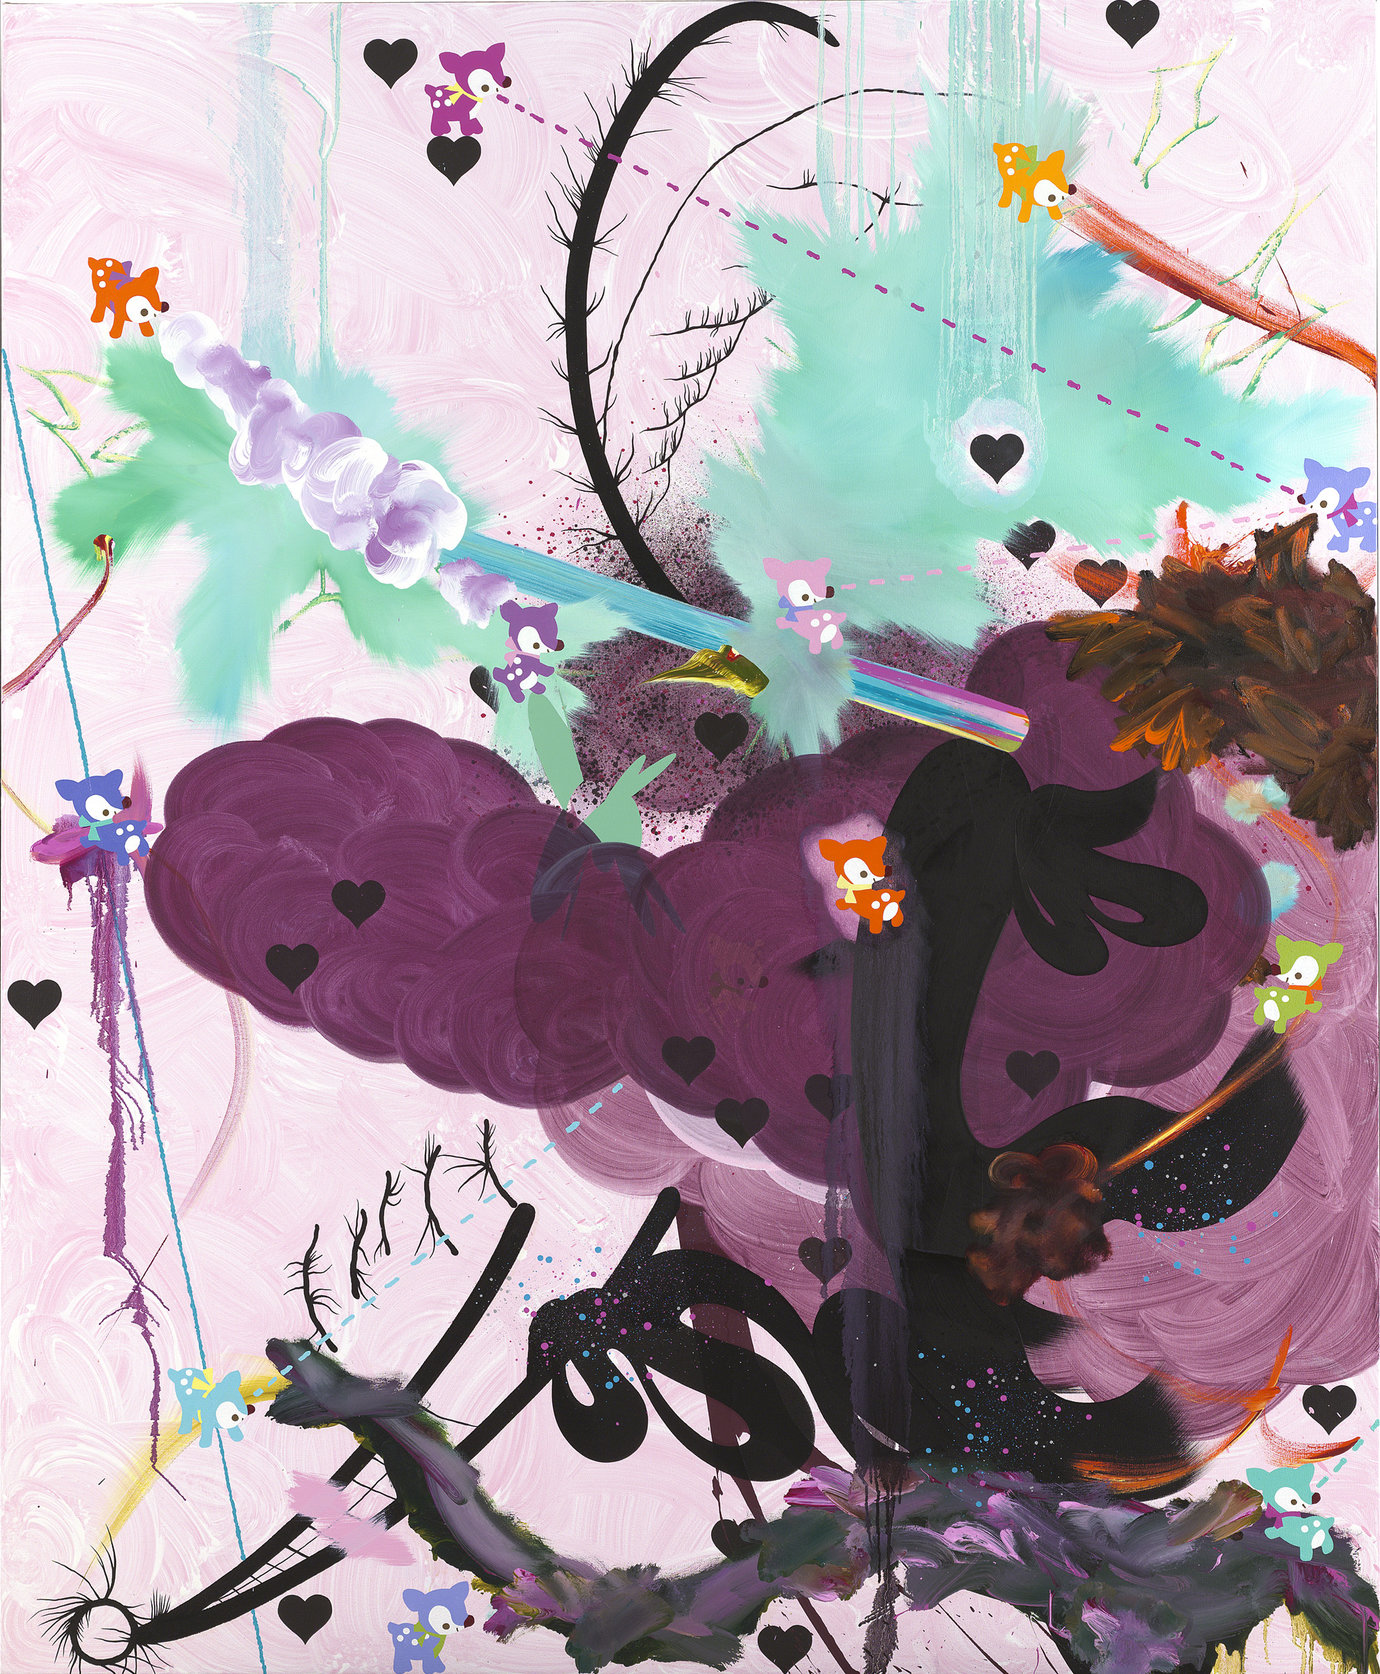 ", 2005. Oil and acrylic on canvas, 84"" x 69"" (213.4 cm x 175.3 cm)."